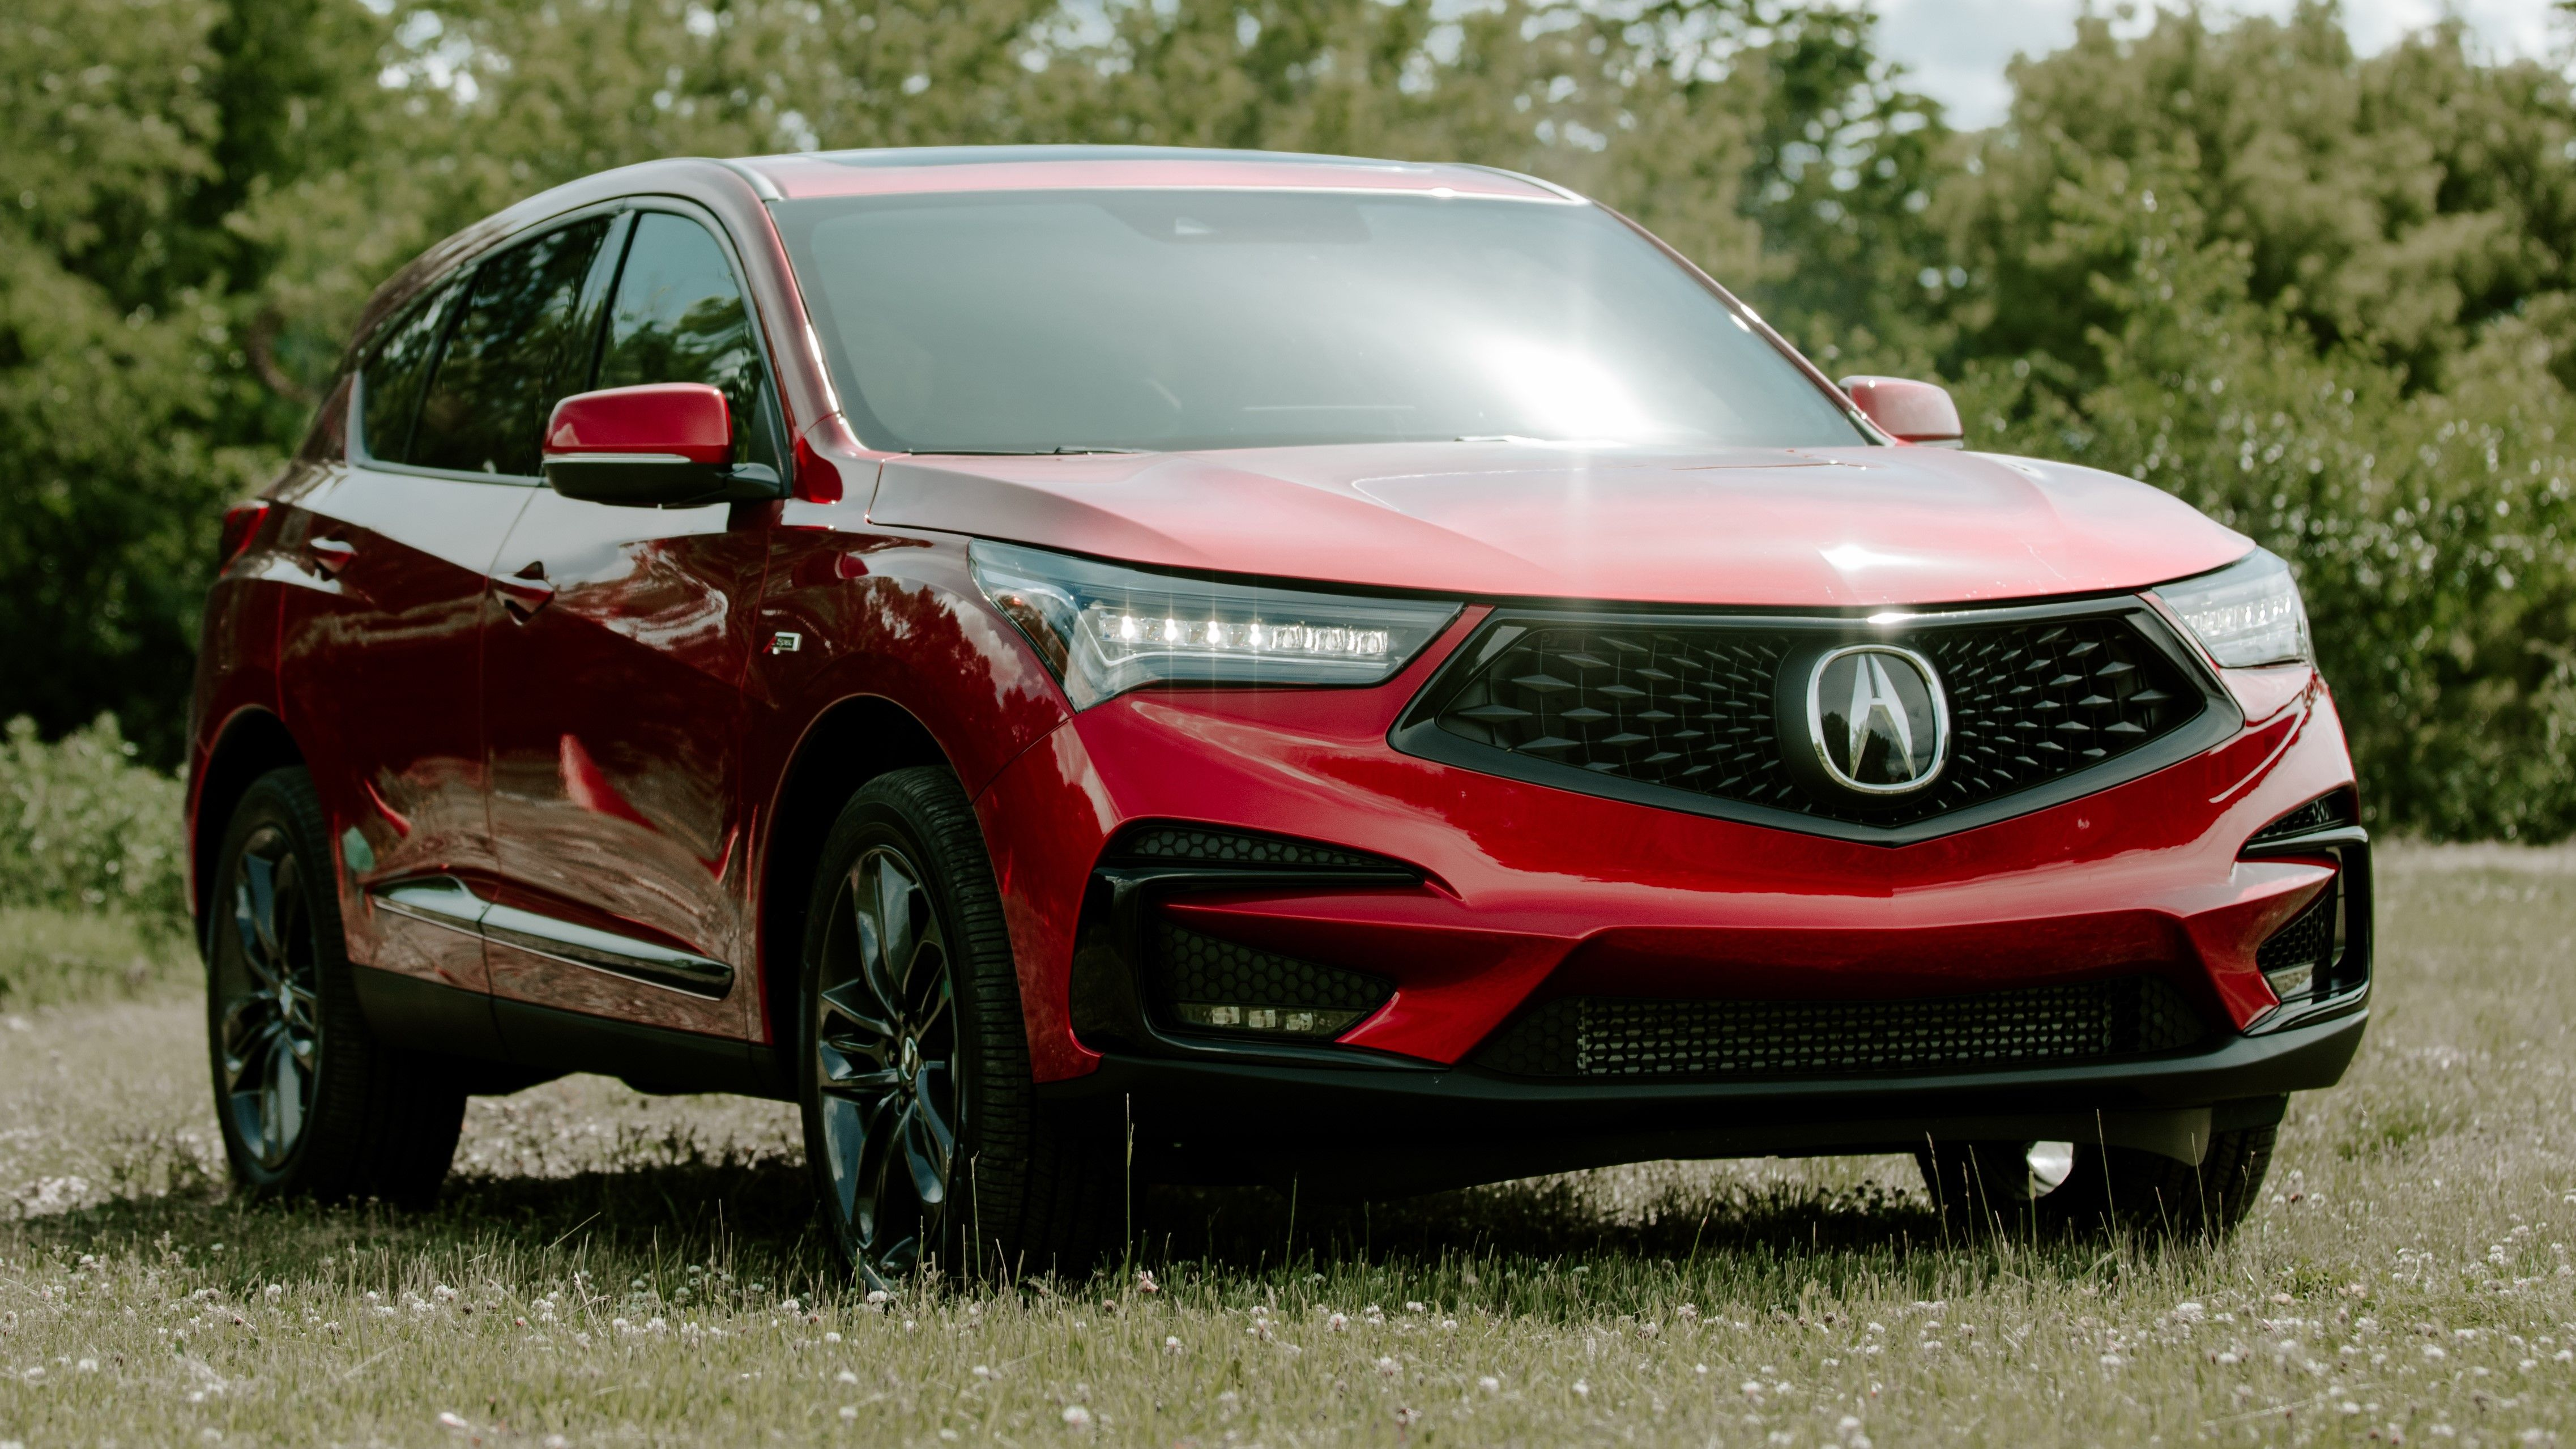 What The Absolute Mouse Positioning On The 2020 Acura Rdx Does To Your Brain Acura Rdx Acura Acura Cars